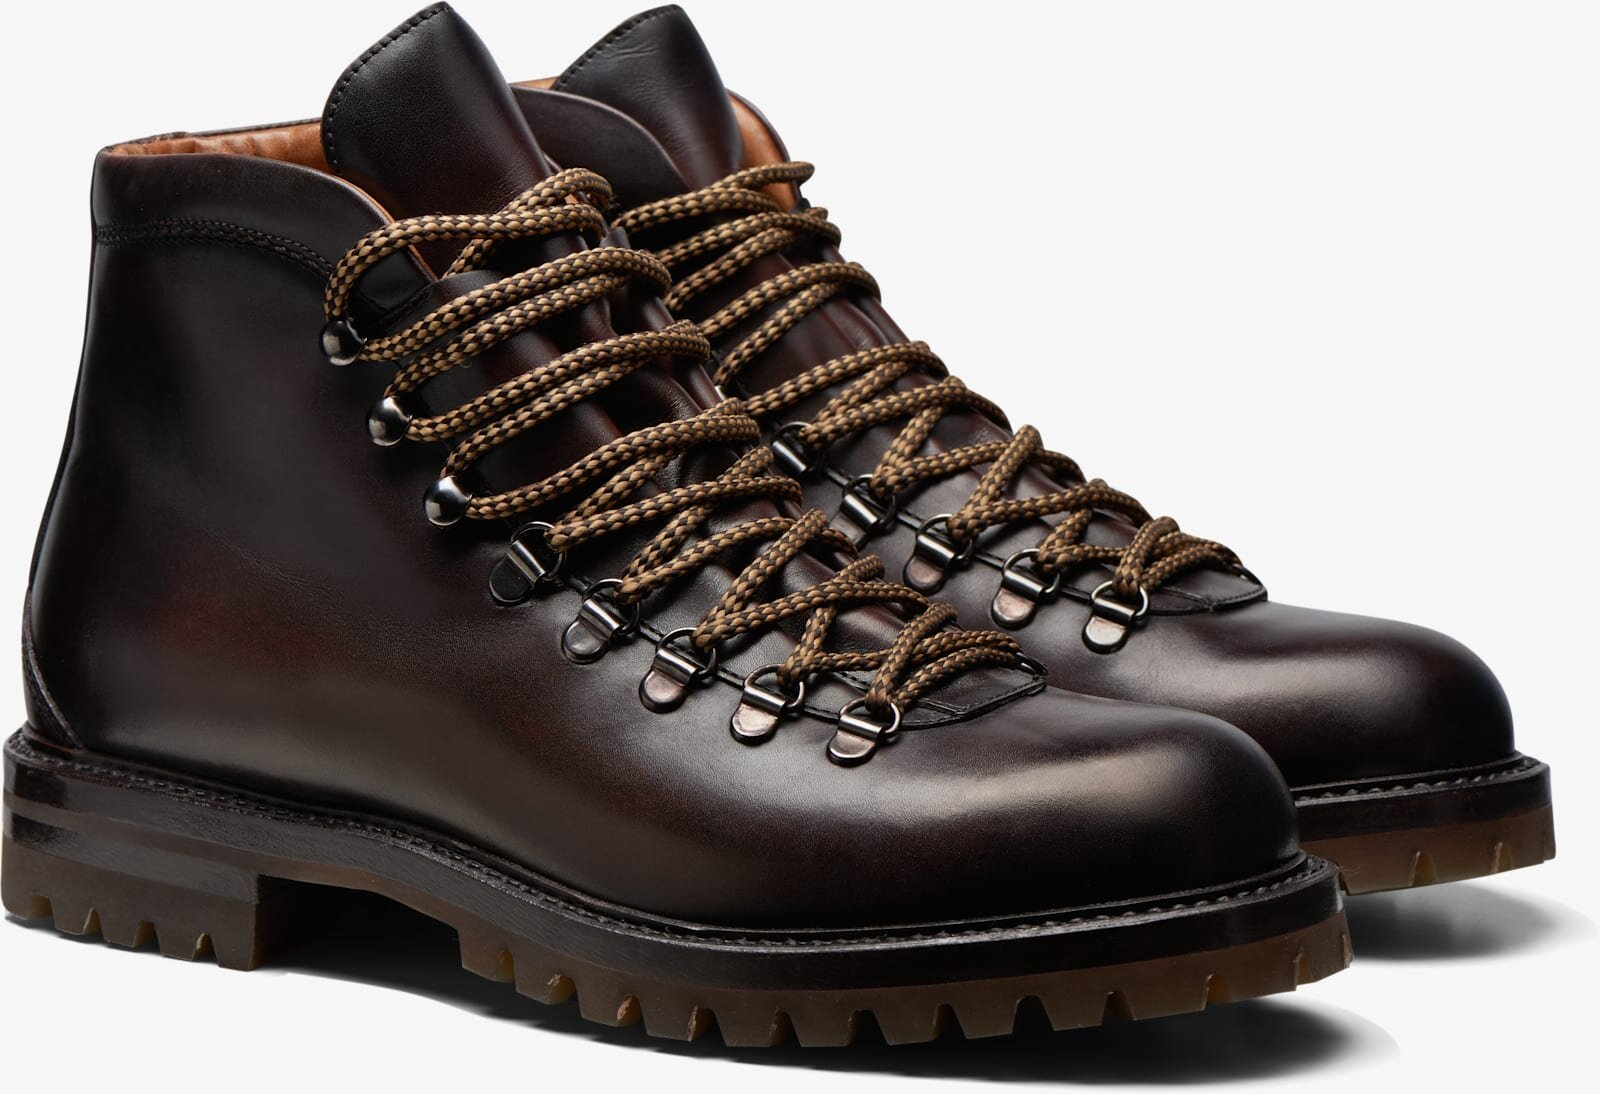 suitsupply hiking boots